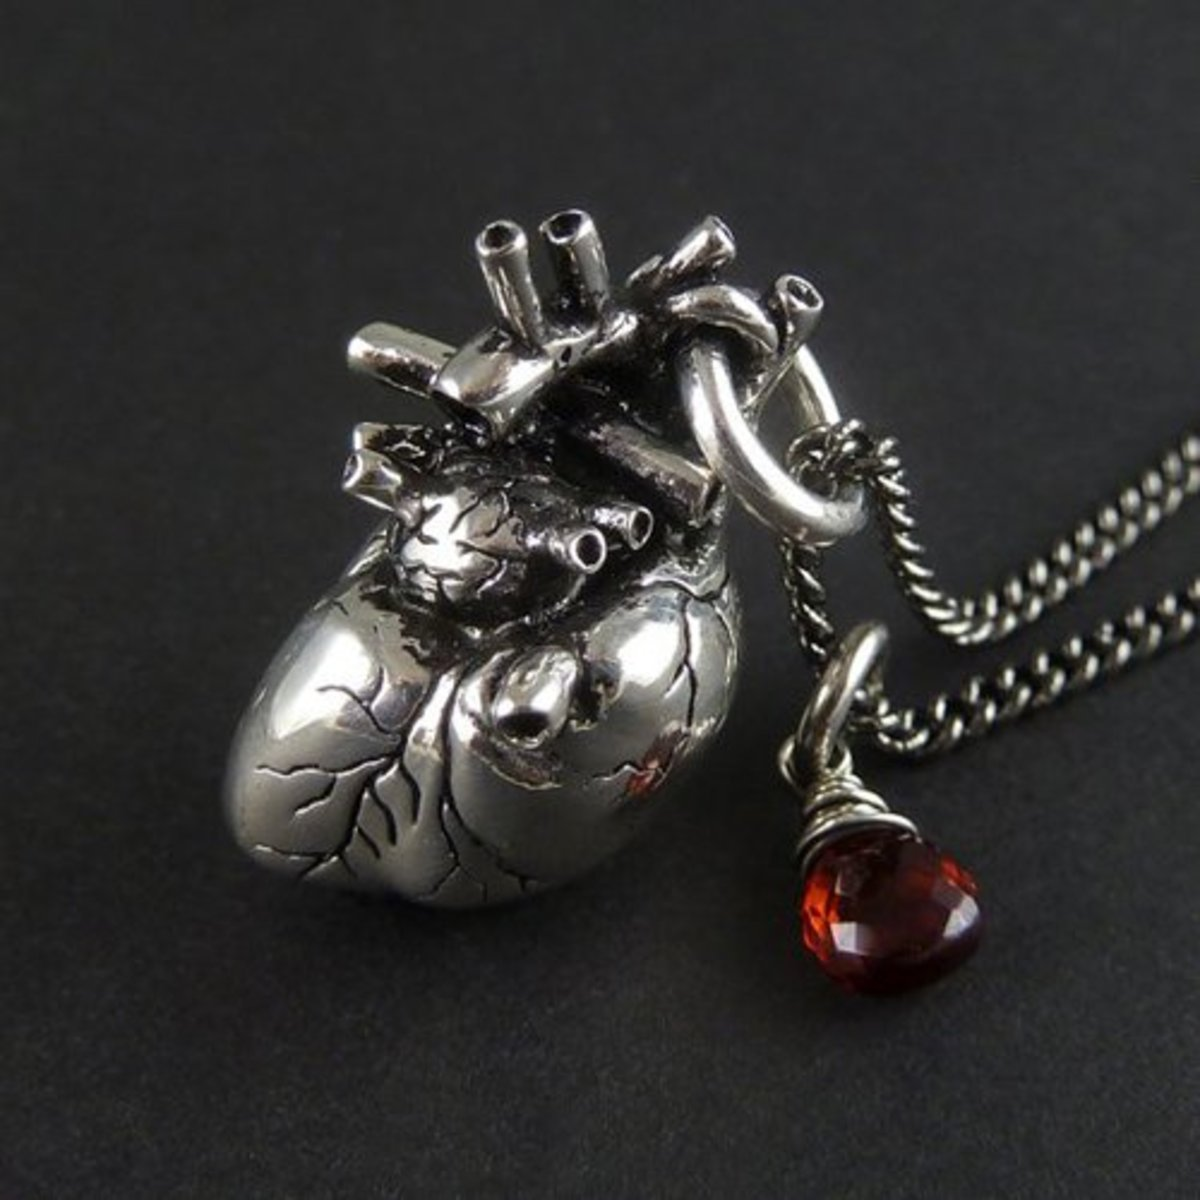 3-Anatomical-Heart-Necklace-with-Sterling-Silver-Wire-Wrapped-Garnet-by-Lost-Apostle